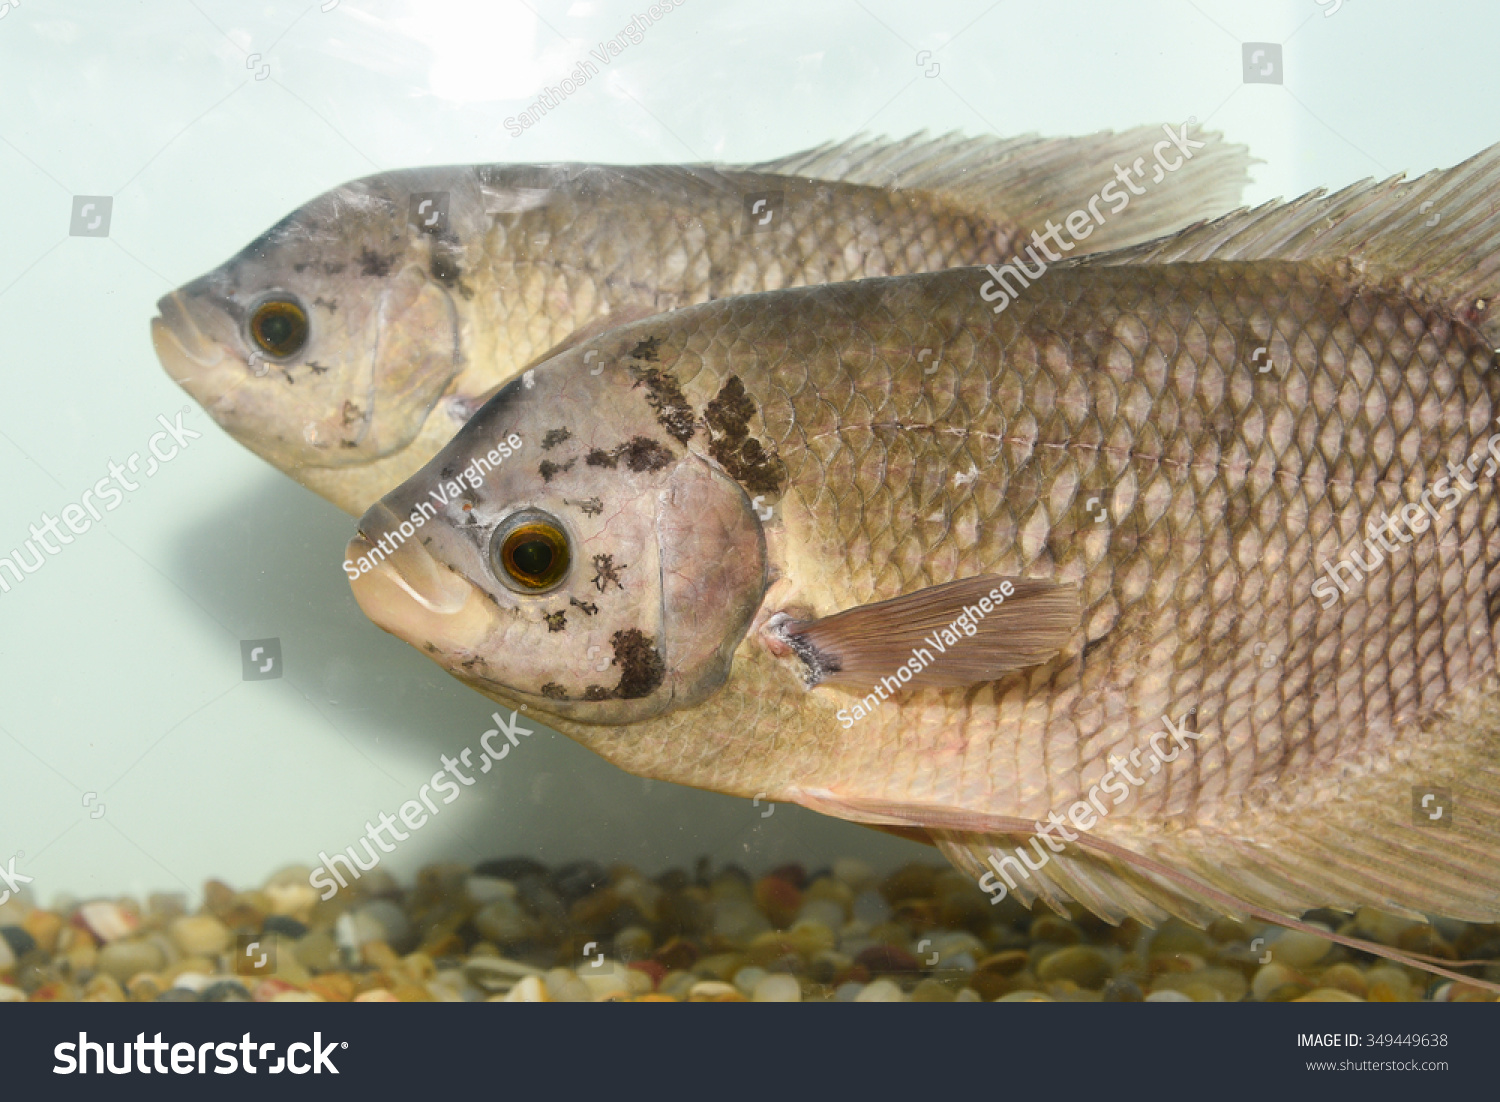 Freshwater fish kerala - A Pair Of Two Giant Gourami Fish In A Fresh Water Aquarium With Dark Background